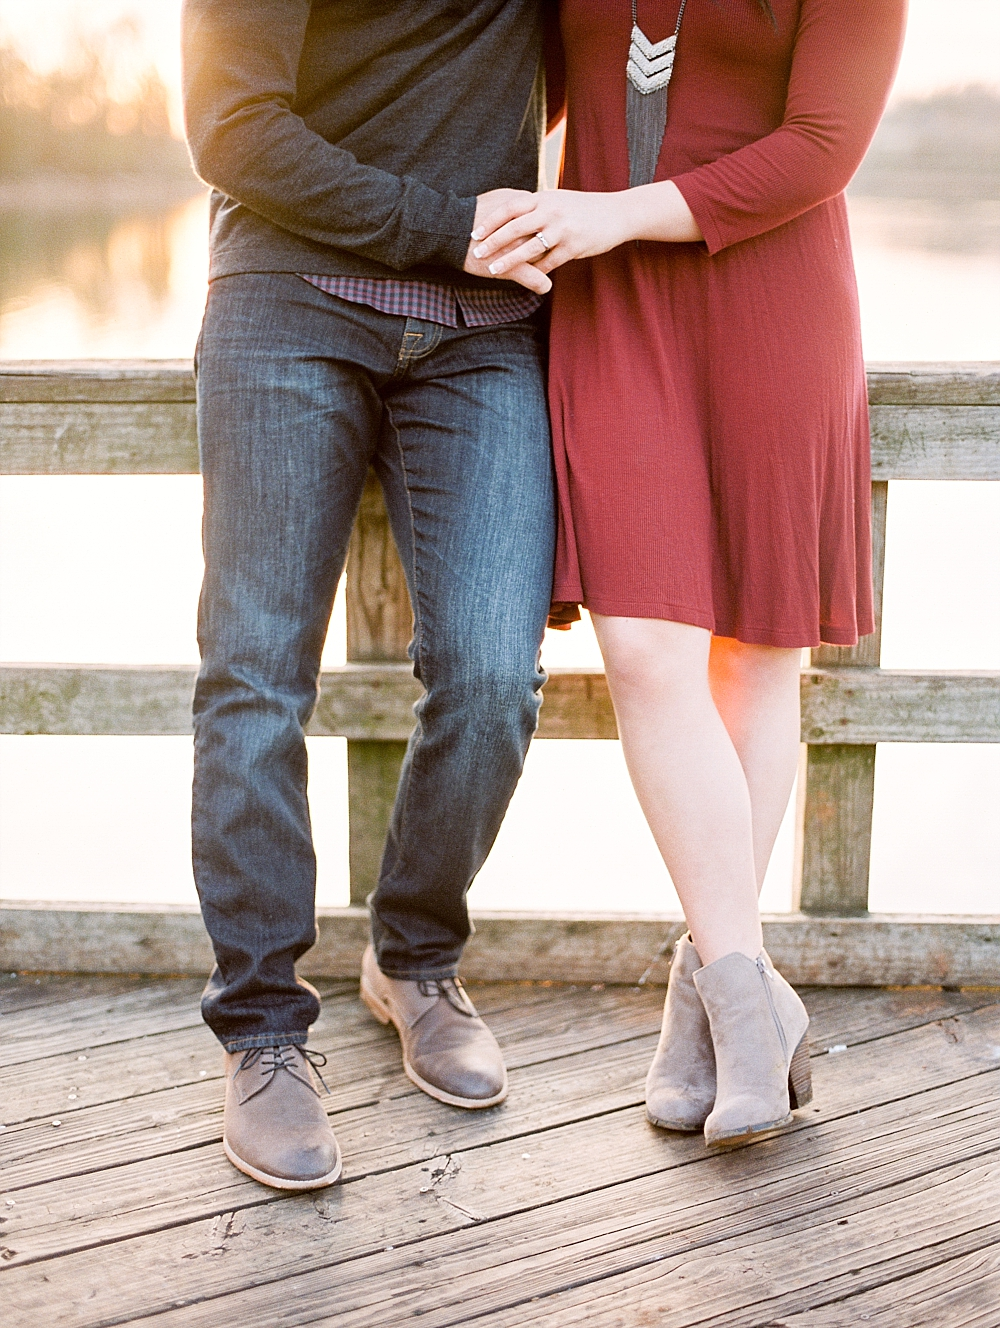 JuicebeatsPhotography_KnoxvilleEngagement_Kristina&Ben_0057.jpg